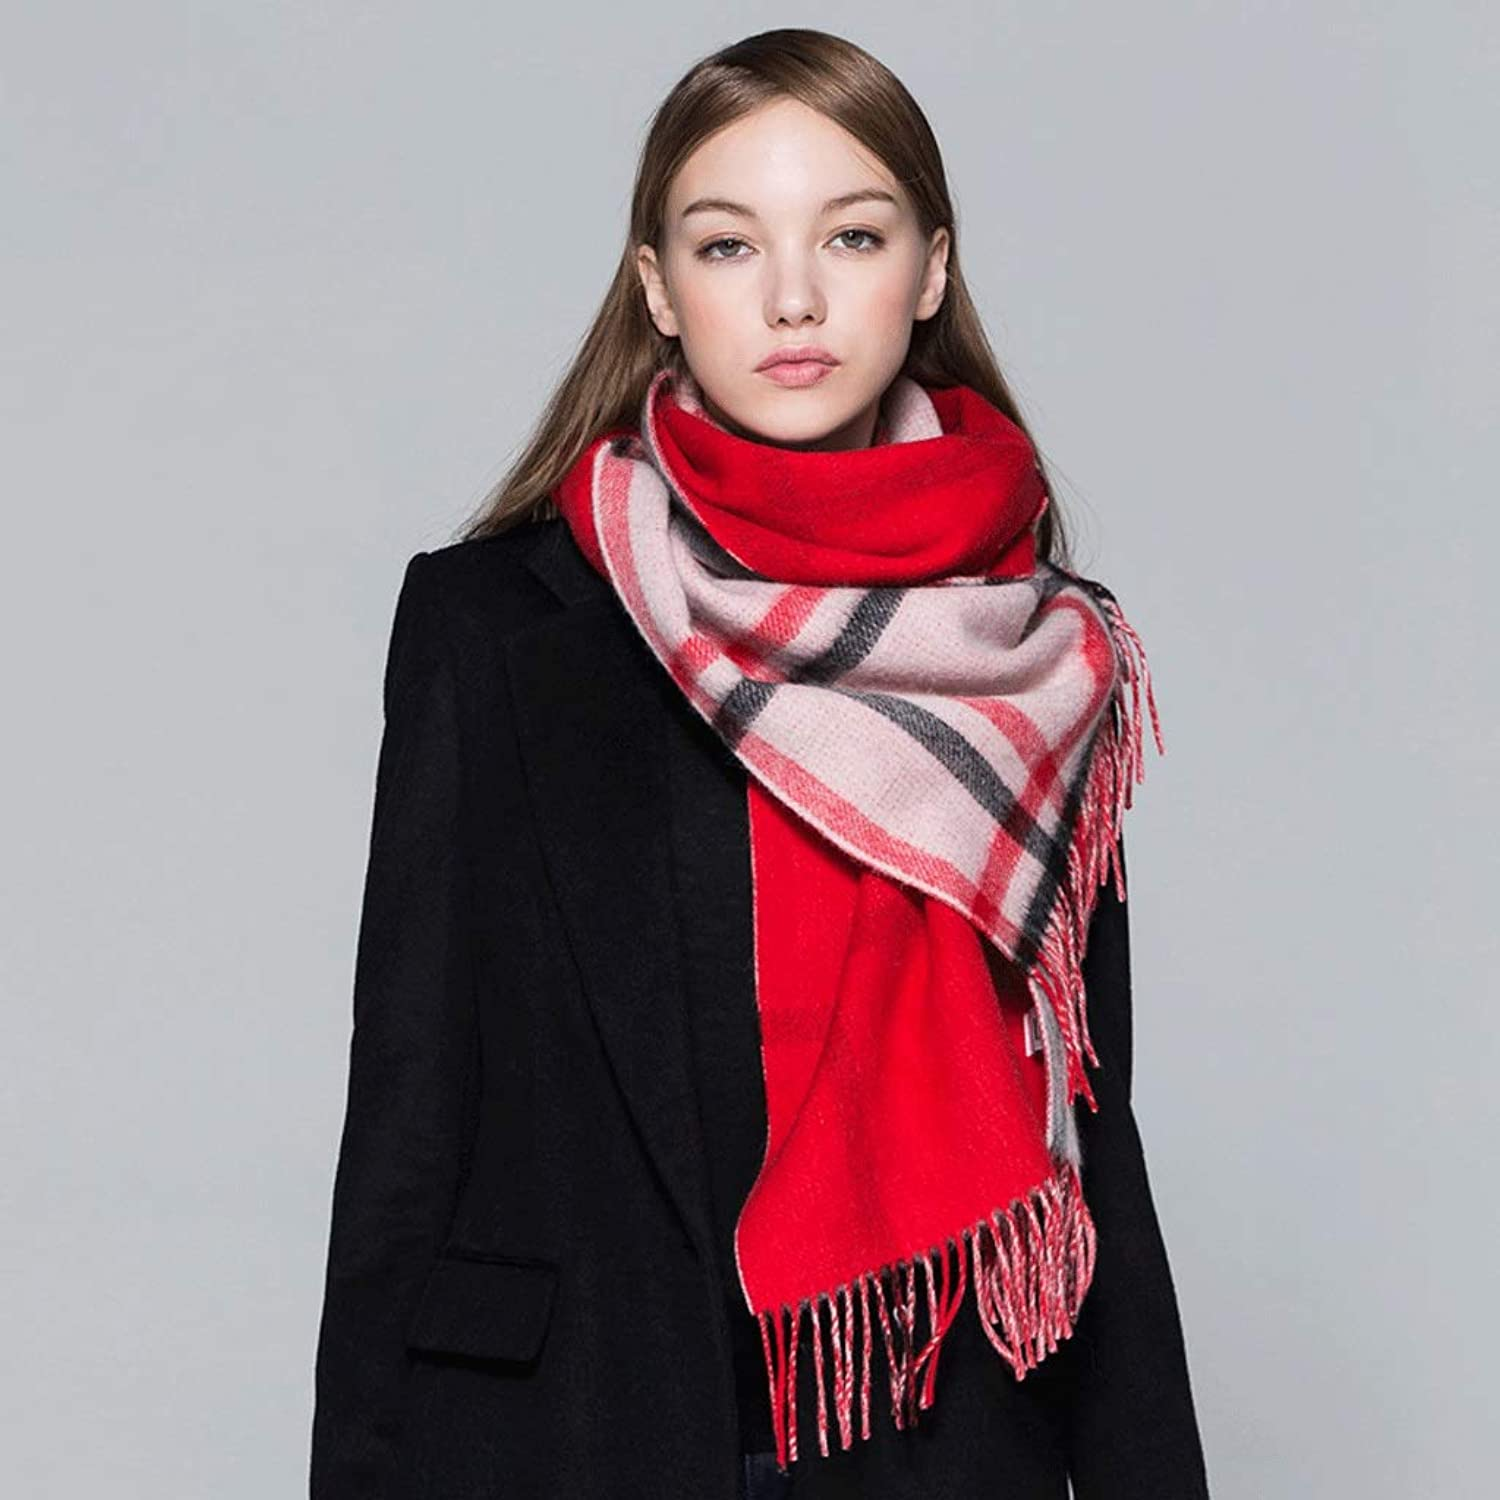 CHX Wool Scarf Female Warm Youth Casual Check Lattice Collar Wild Fashion Scarves Light Luxury Products V (color   RED)